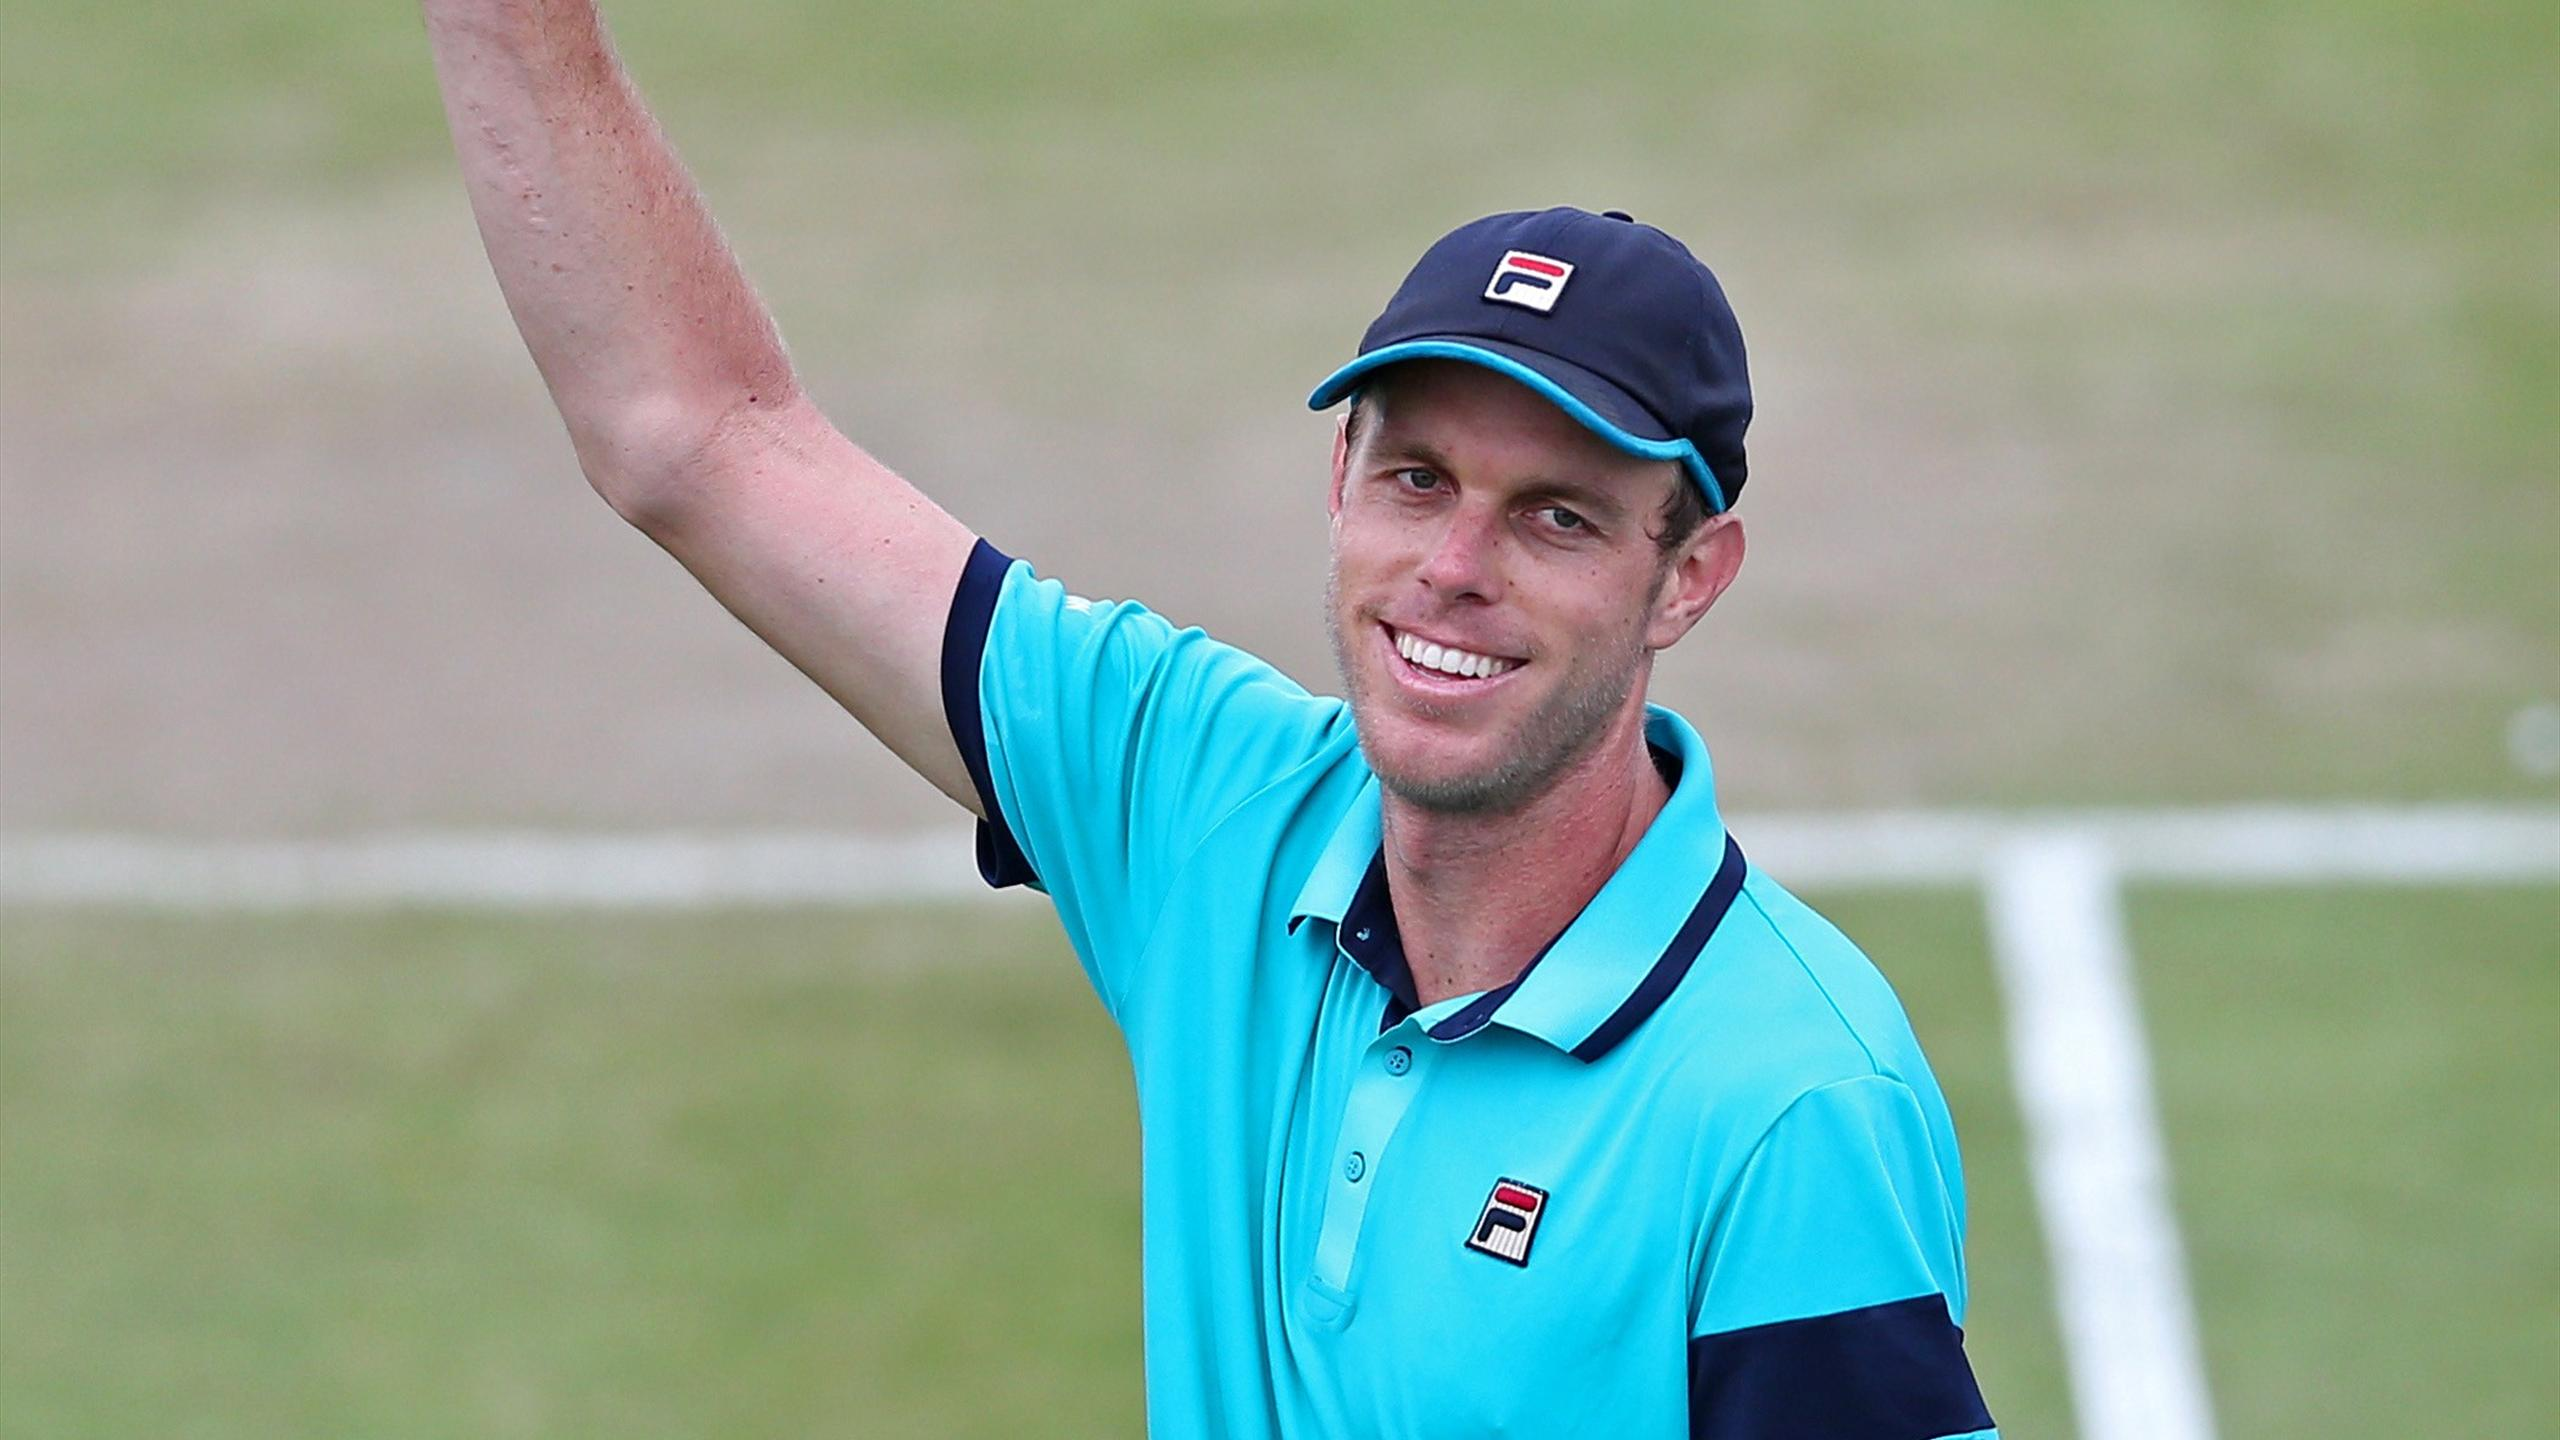 USA's Sam Querrey celebrates winning his semi final match